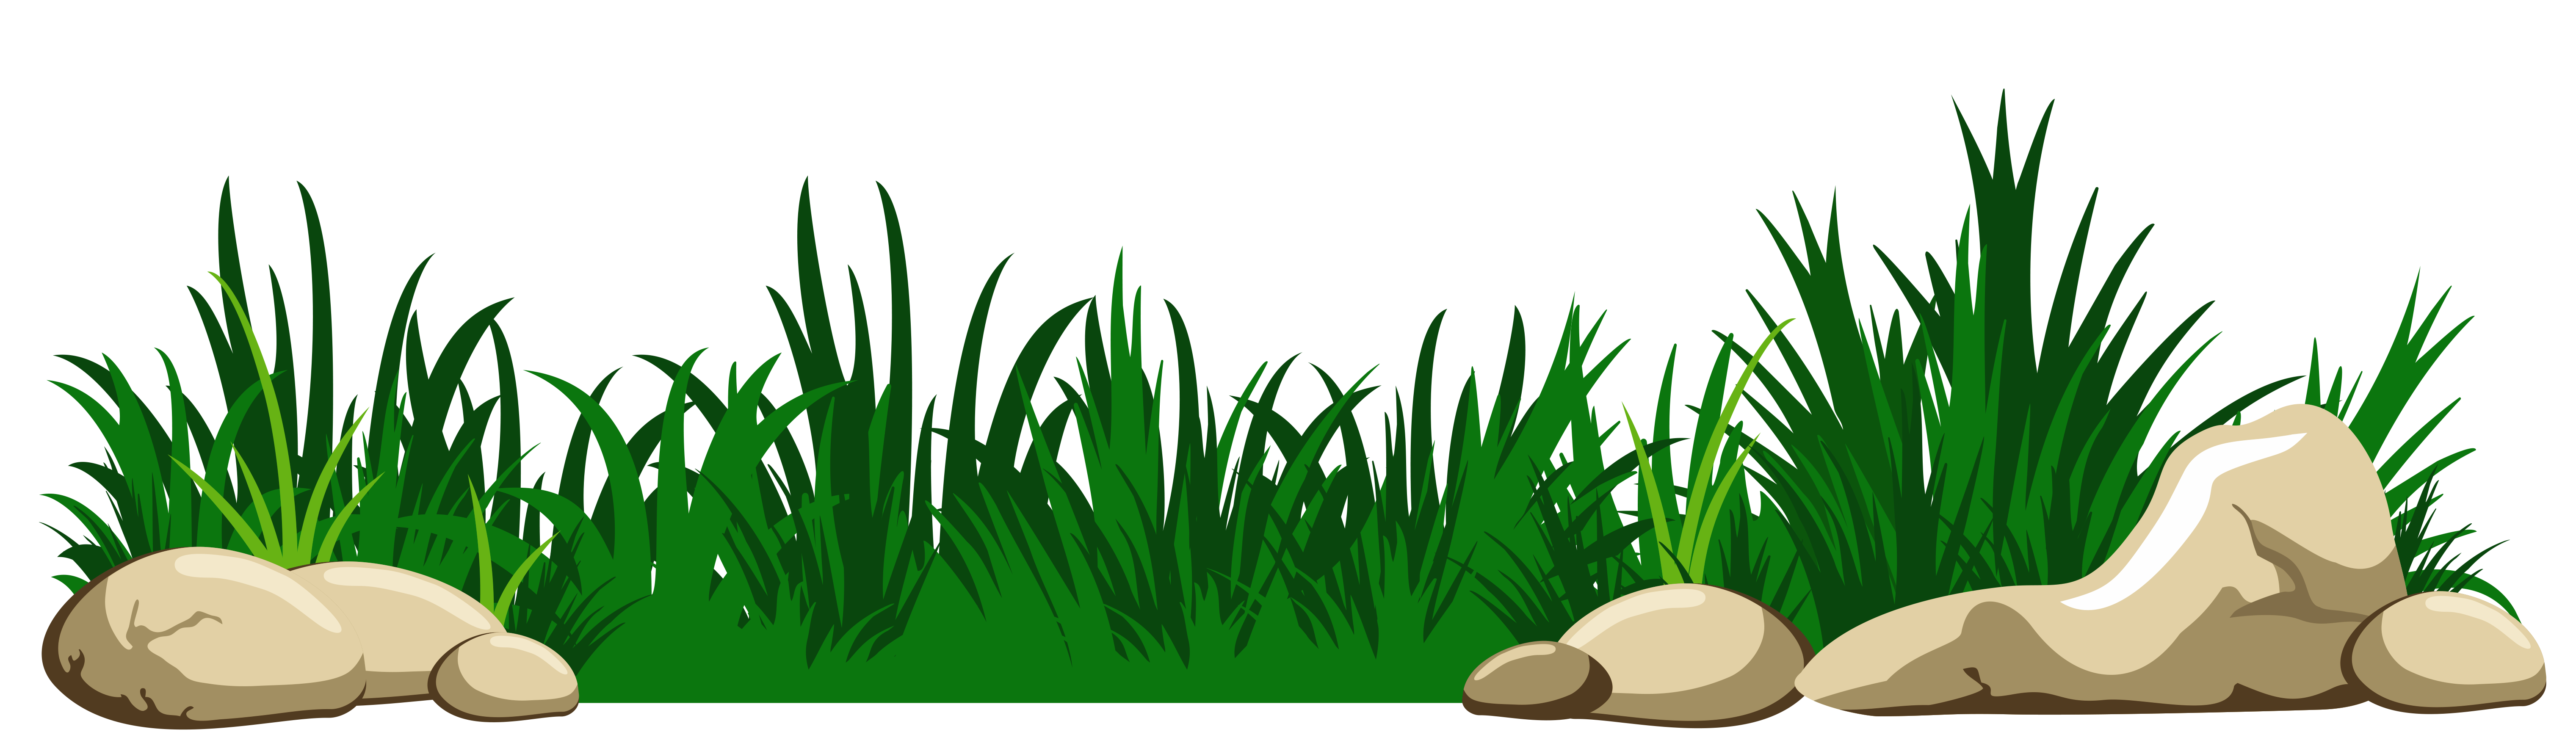 Sketch clipart grass With Clipart Gallery Yopriceville PNG